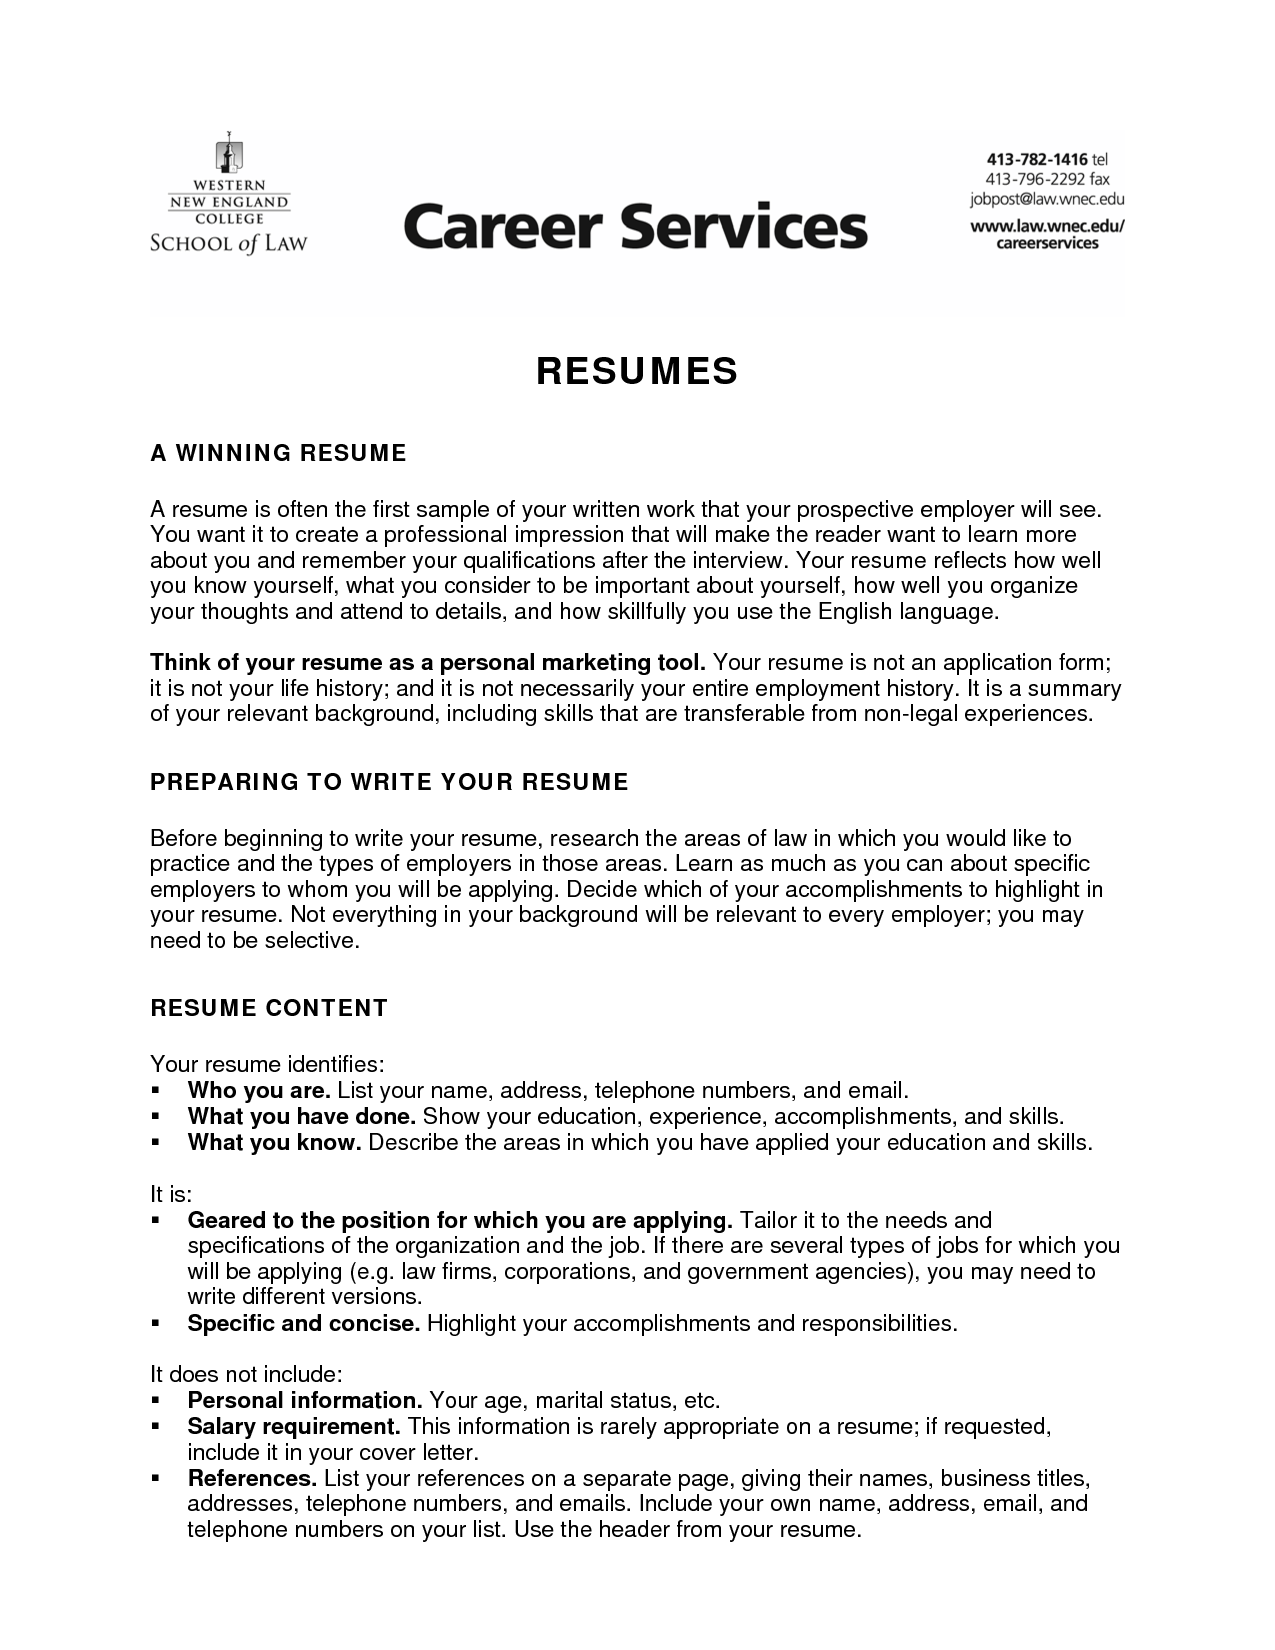 Objectives On A Resume Objective Resume Criminal Justice  Httpwwwresumecareer